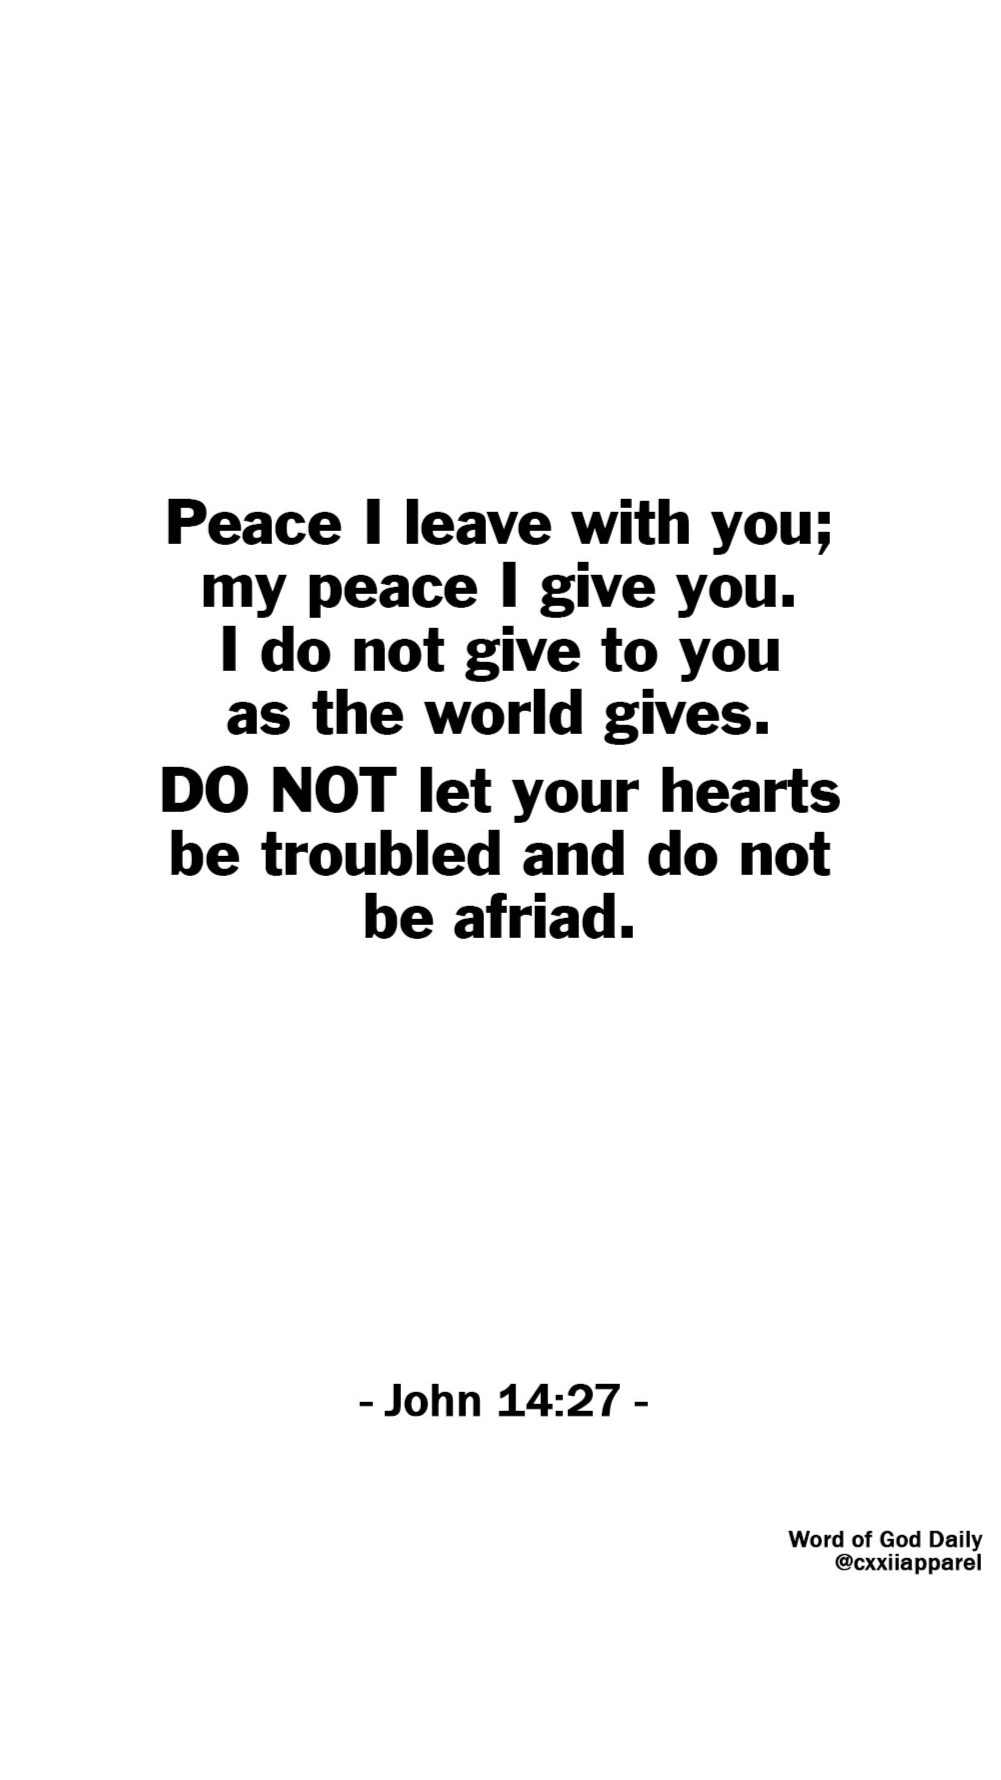 The Peace of Jesus is Real, Do not let your hearts be troubled.